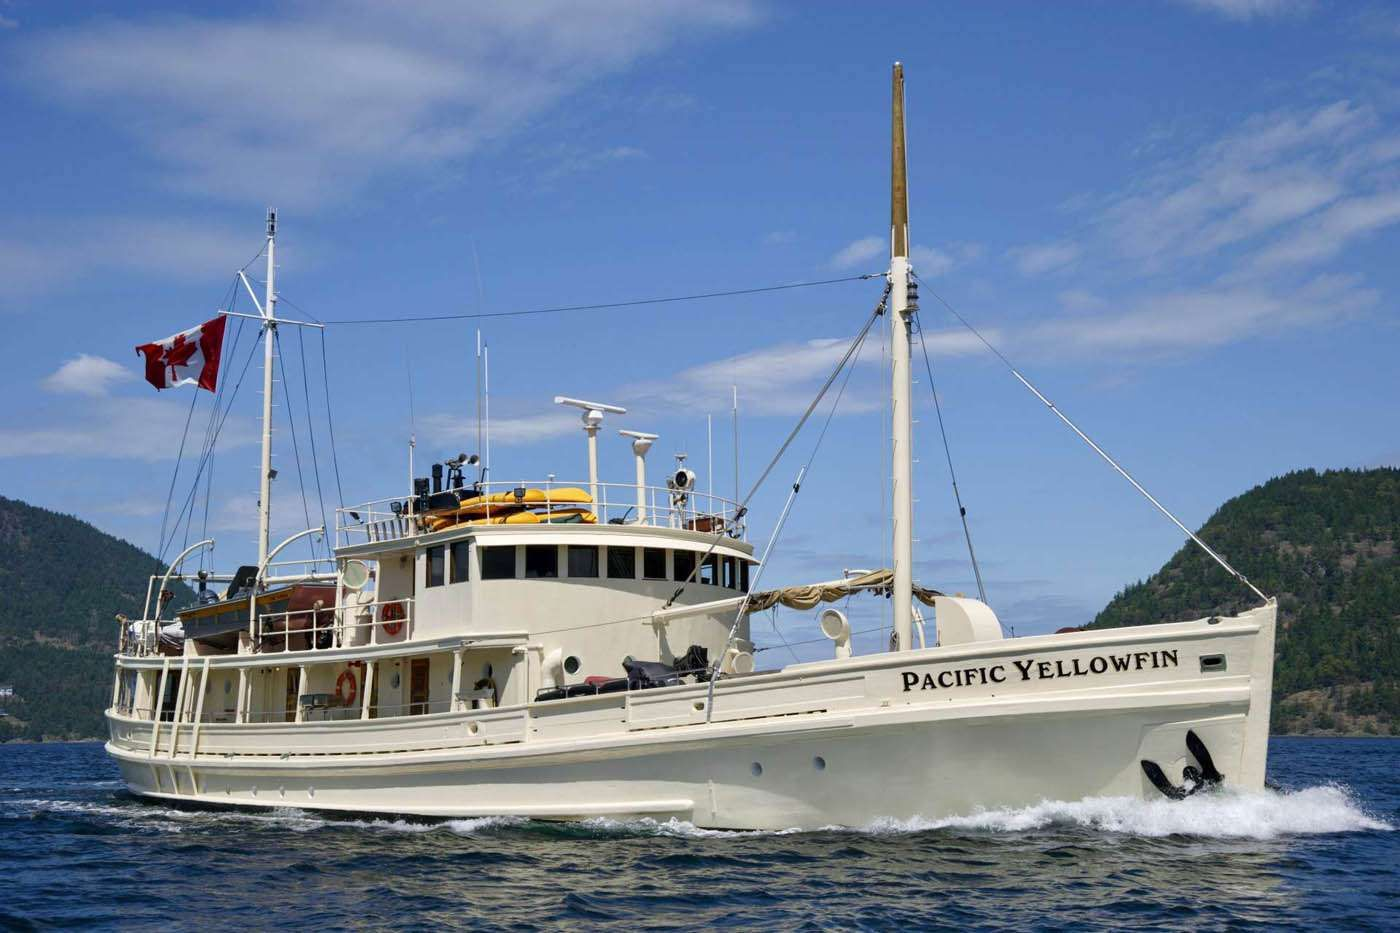 PACIFIC YELLOWFIN Yacht Charter - Ritzy Charters